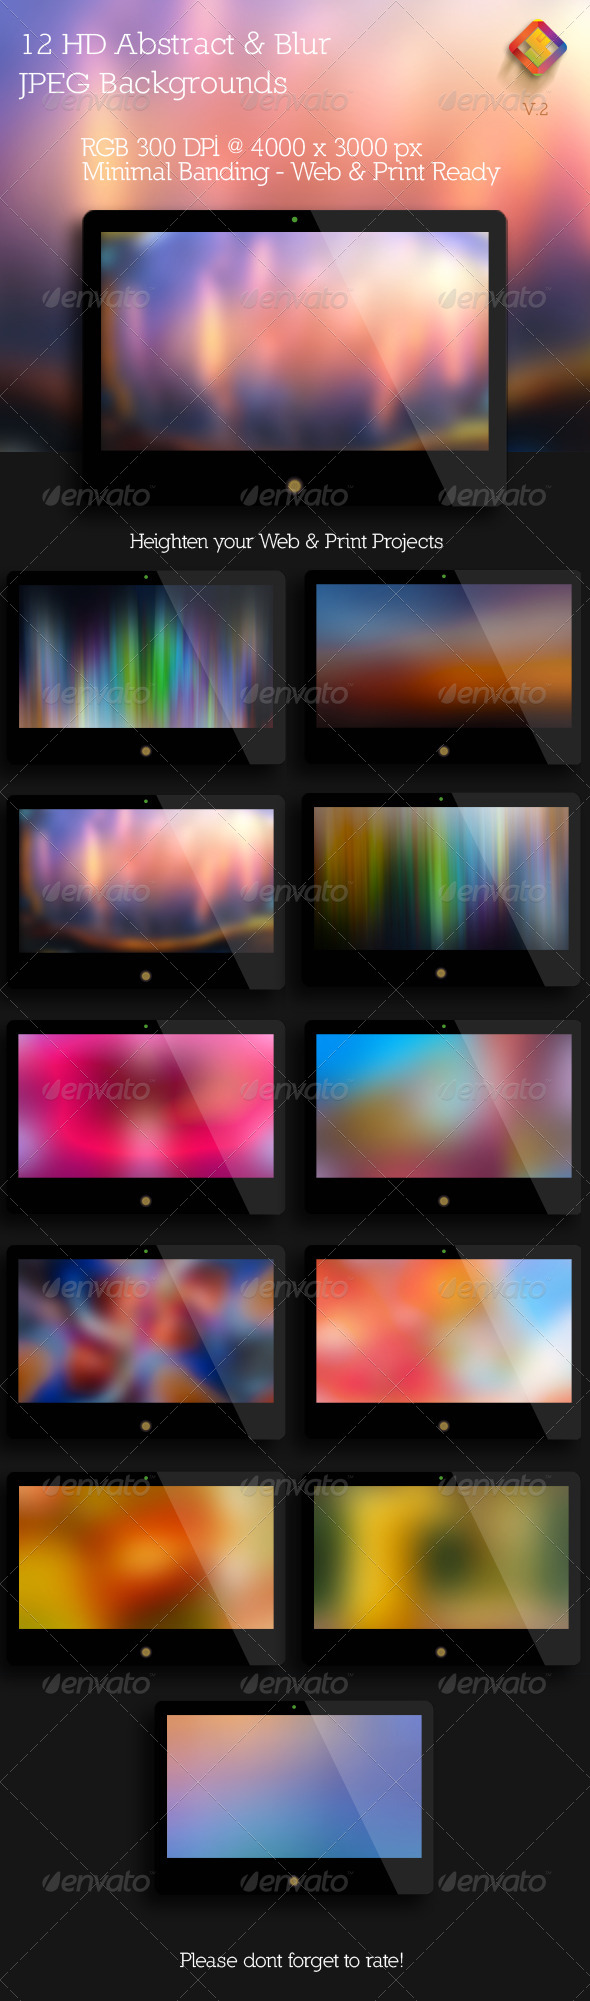 GraphicRiver HD Abstract and Blur Backgrounds V.2 6010419